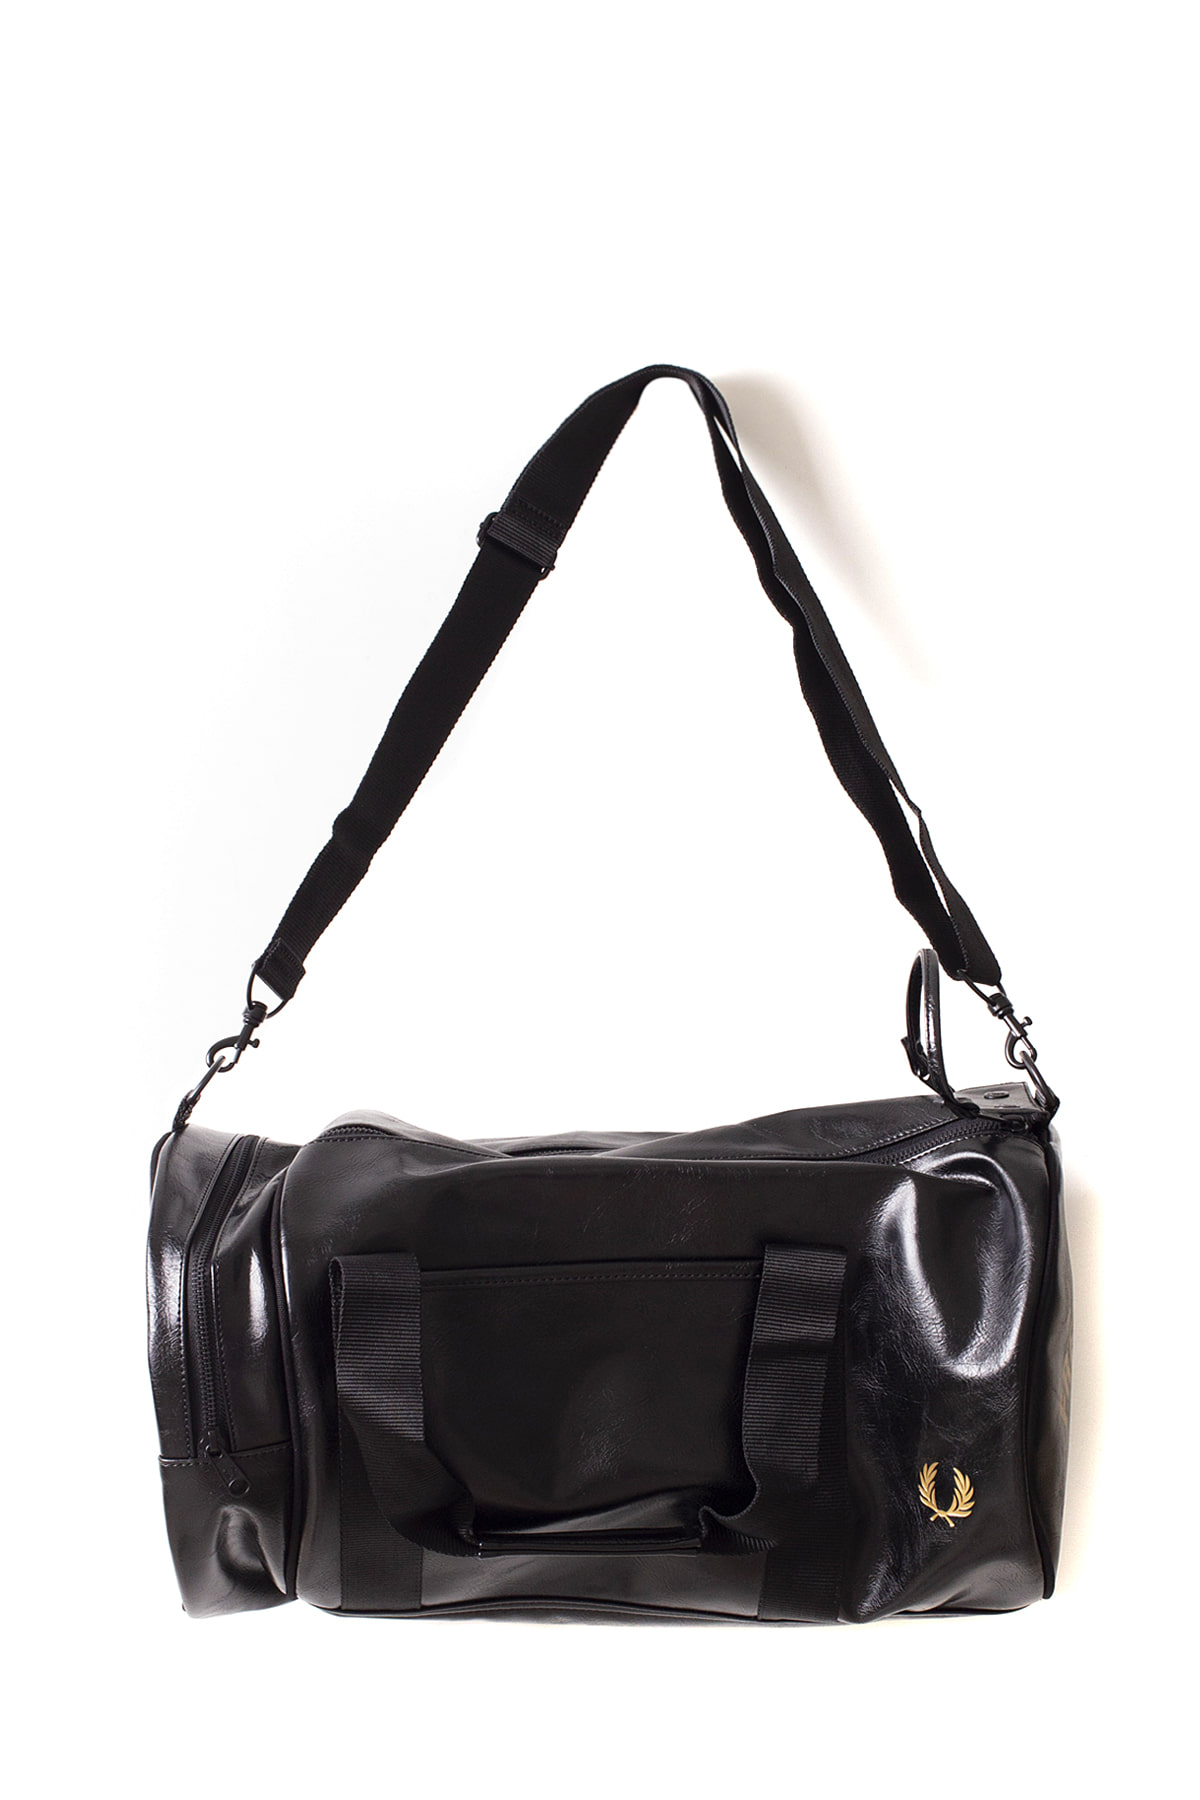 4c40b9487c62 FRED PERRY   Classic Barrel Bag (Black   Gold) - IAMSHOP-ONLINE